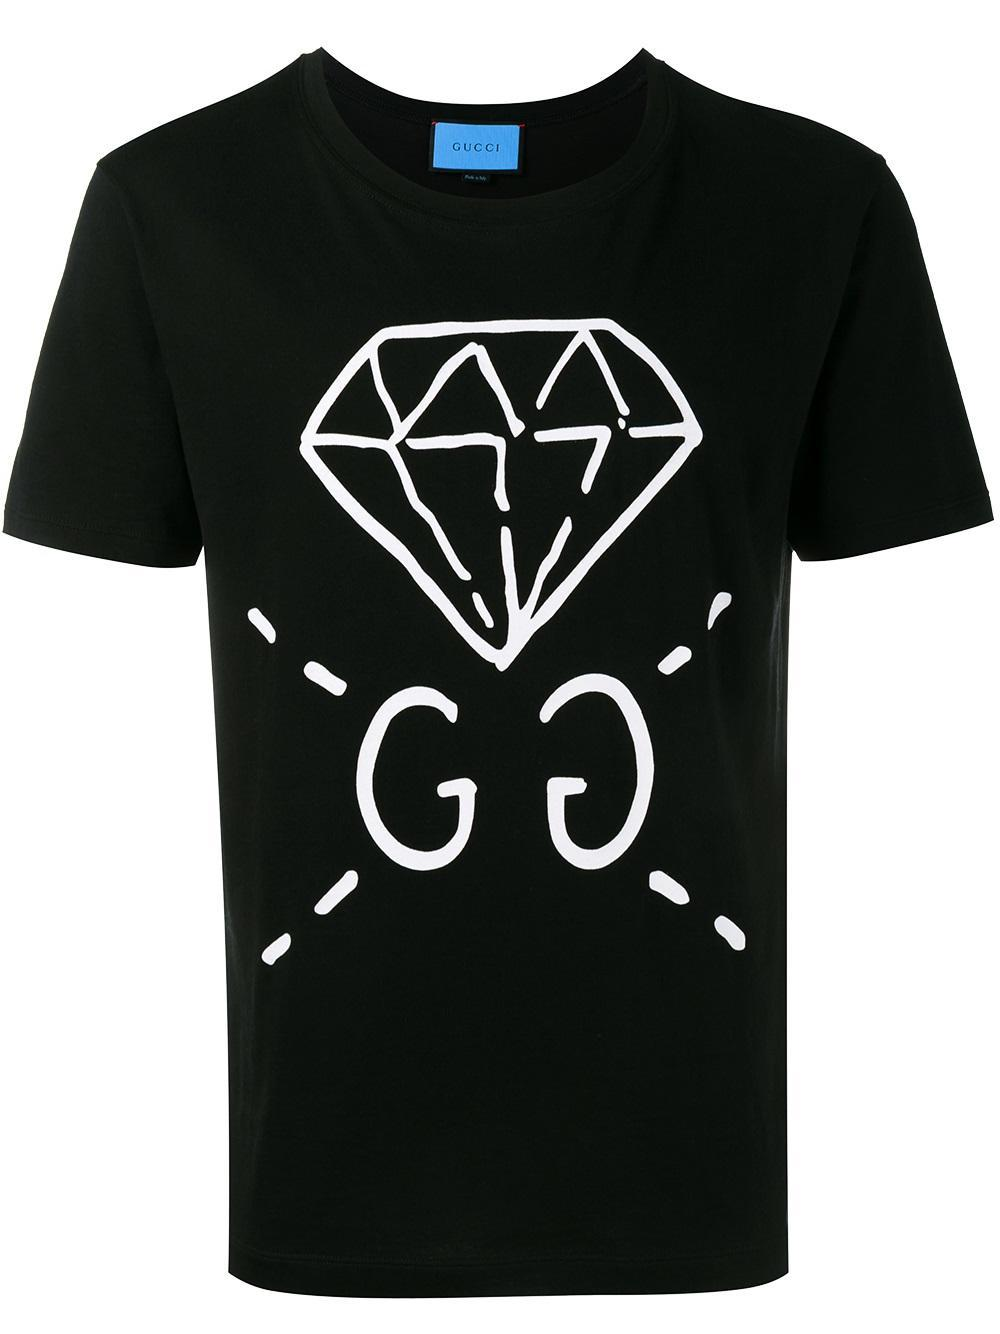 Lyst Gucci Diamond Print T Shirt In Black For Men